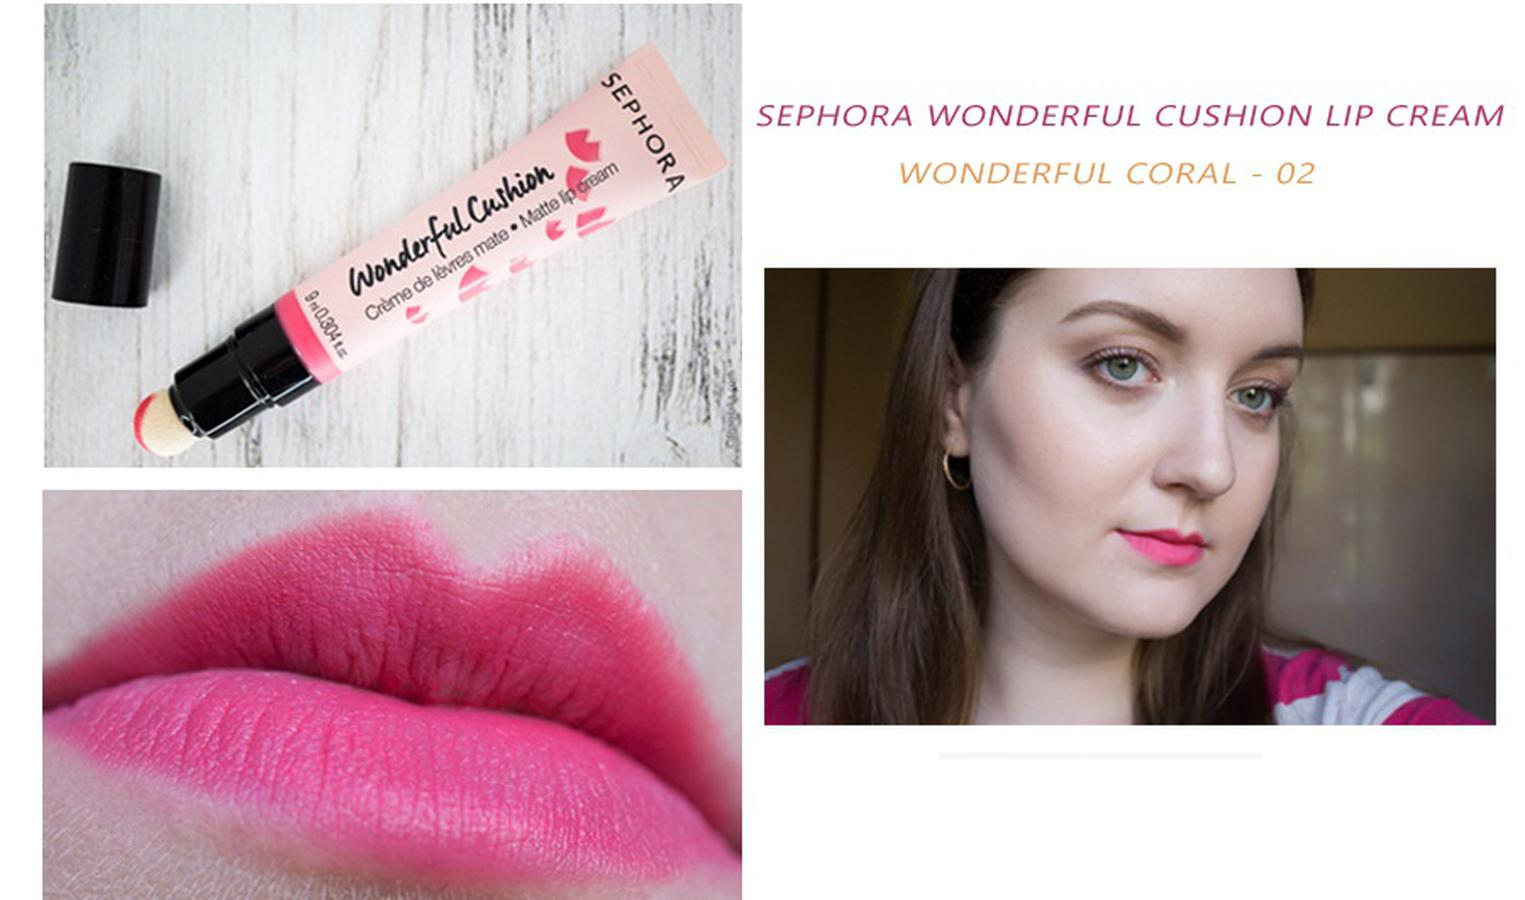 Son Kem Lì Sephora Wonderful Cushion Matte Lip Cream